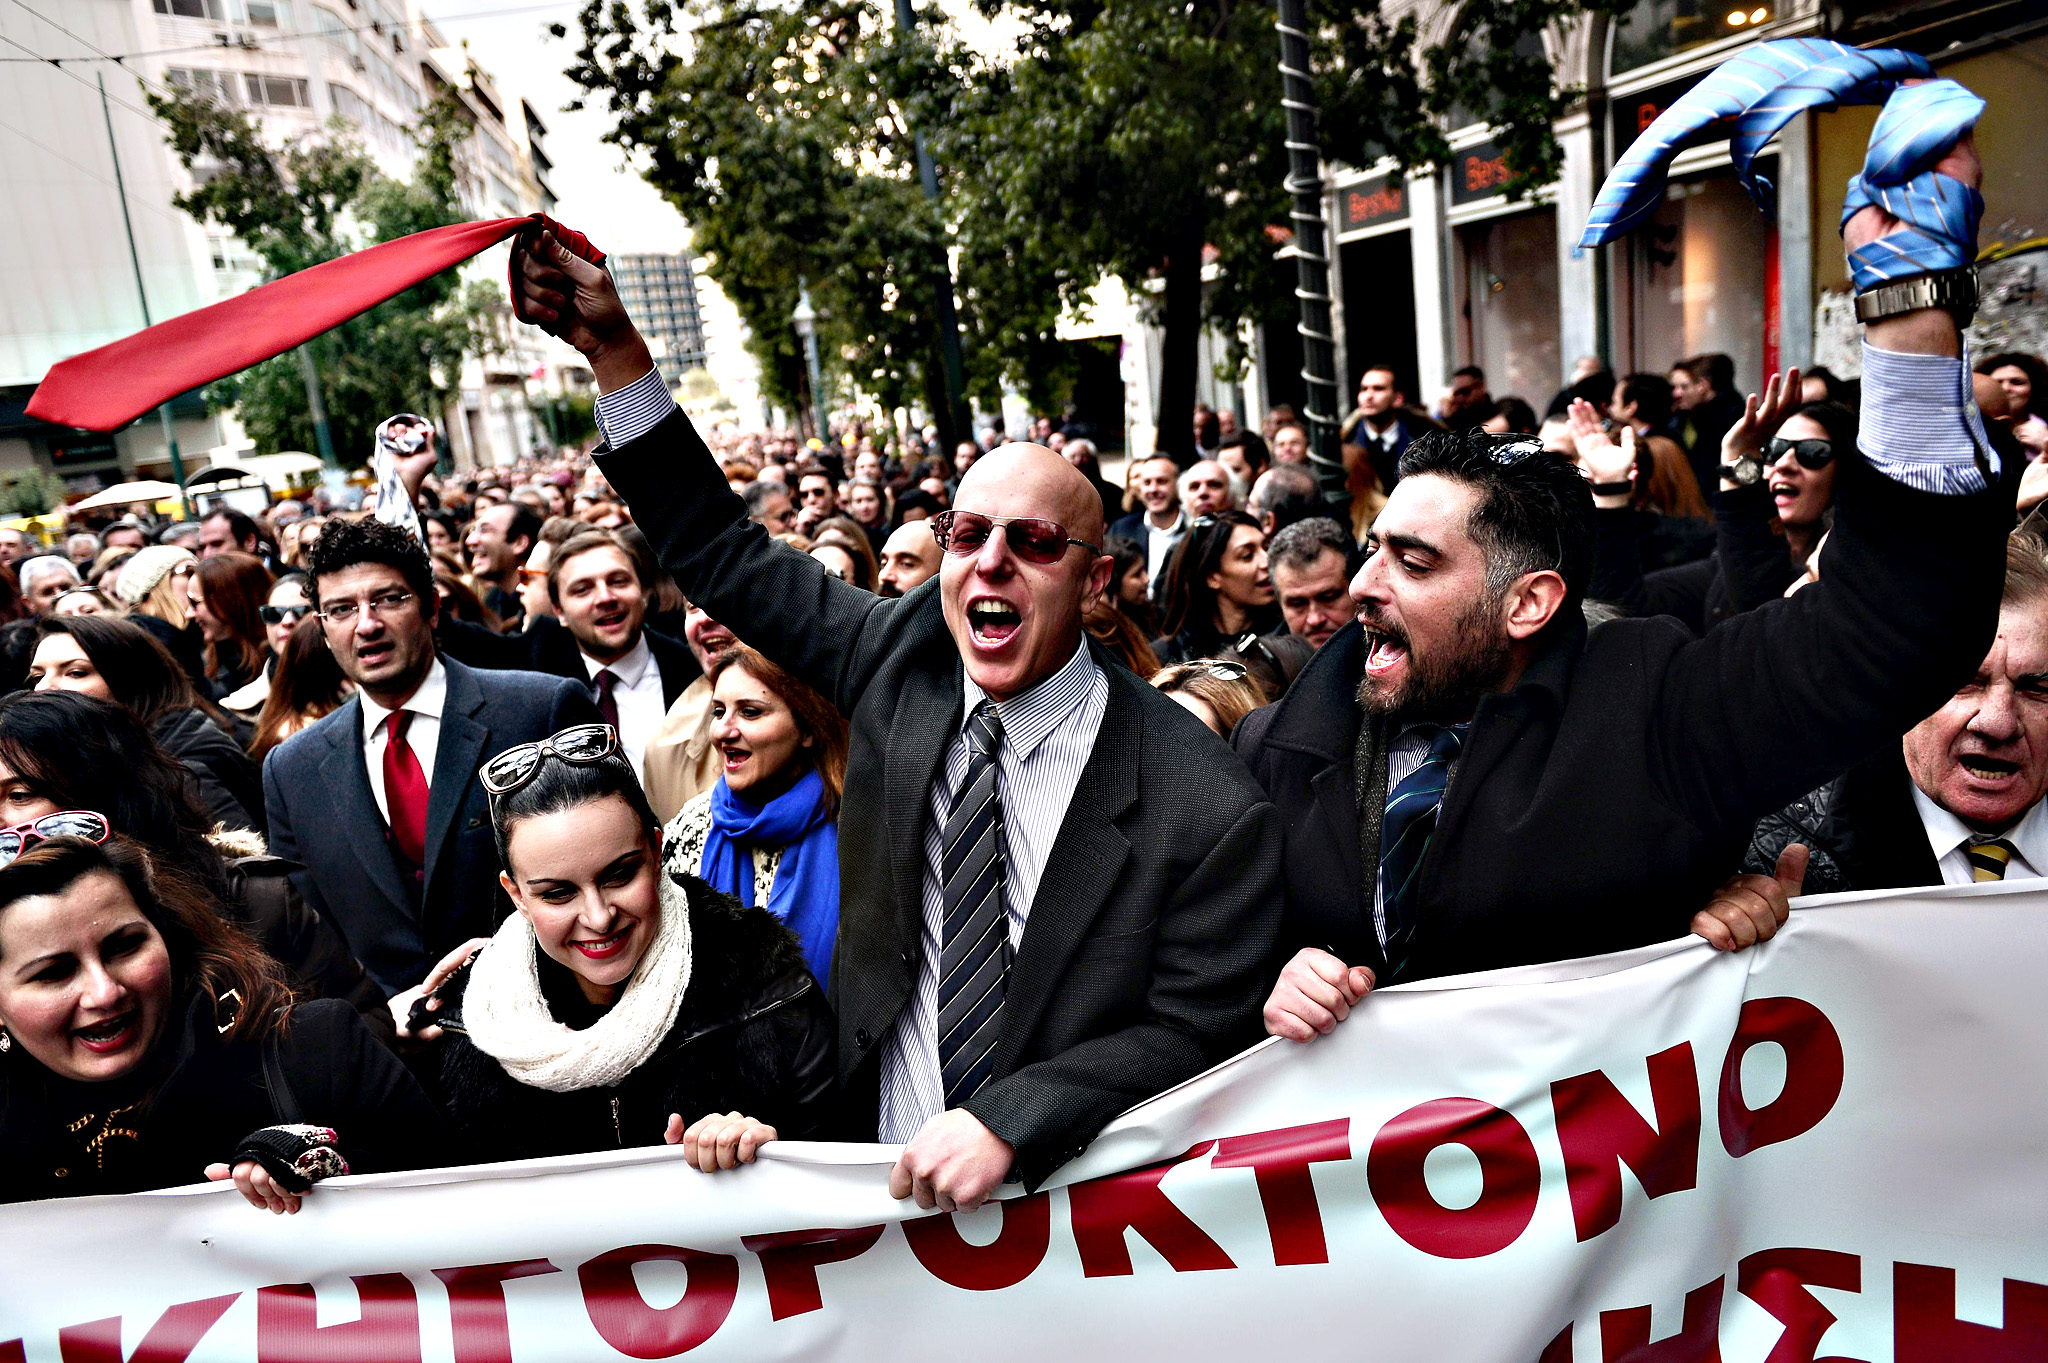 Lawyers wave their ties during a rally in central Athens against the social security reforms proposed by the government, on Thursday.   Thousands of scientists, doctors, lawyers, engineers and self employed professionals participated in the massive rally, in protest againt a government draft bill regarding reforms in the countrys pension system